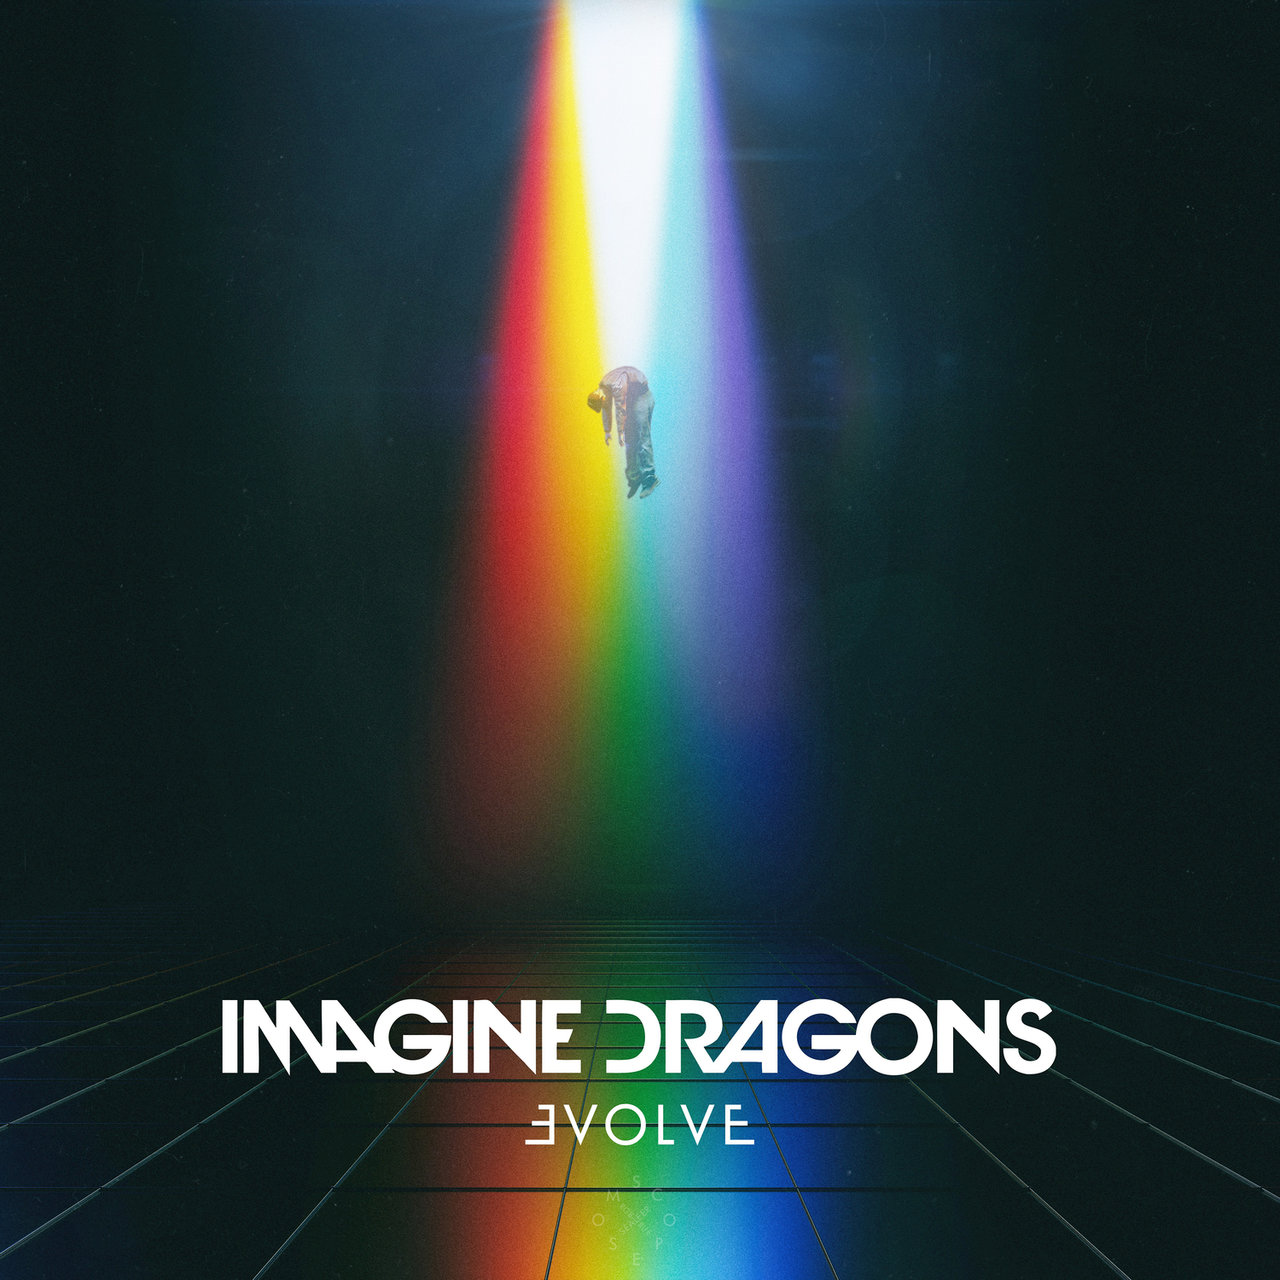 ImagineDragons_Evolve.jpg